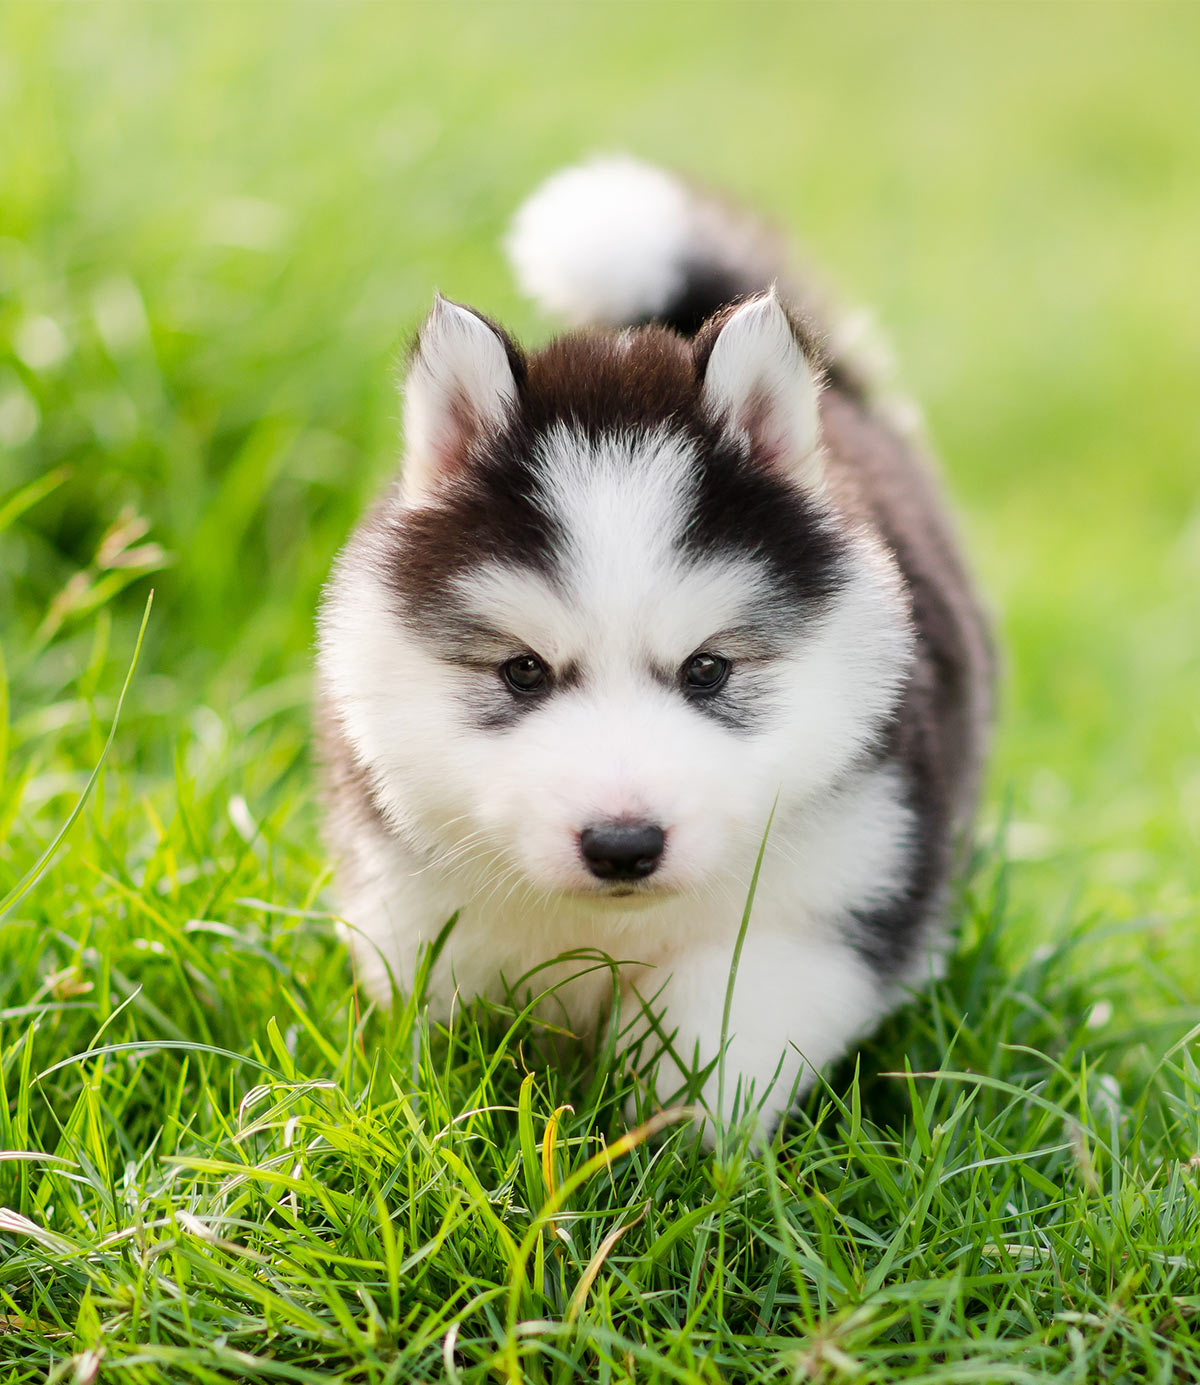 Pictures Of Huskies An Amazing Gallery Of Siberian And Alaskan Dogs And Pups